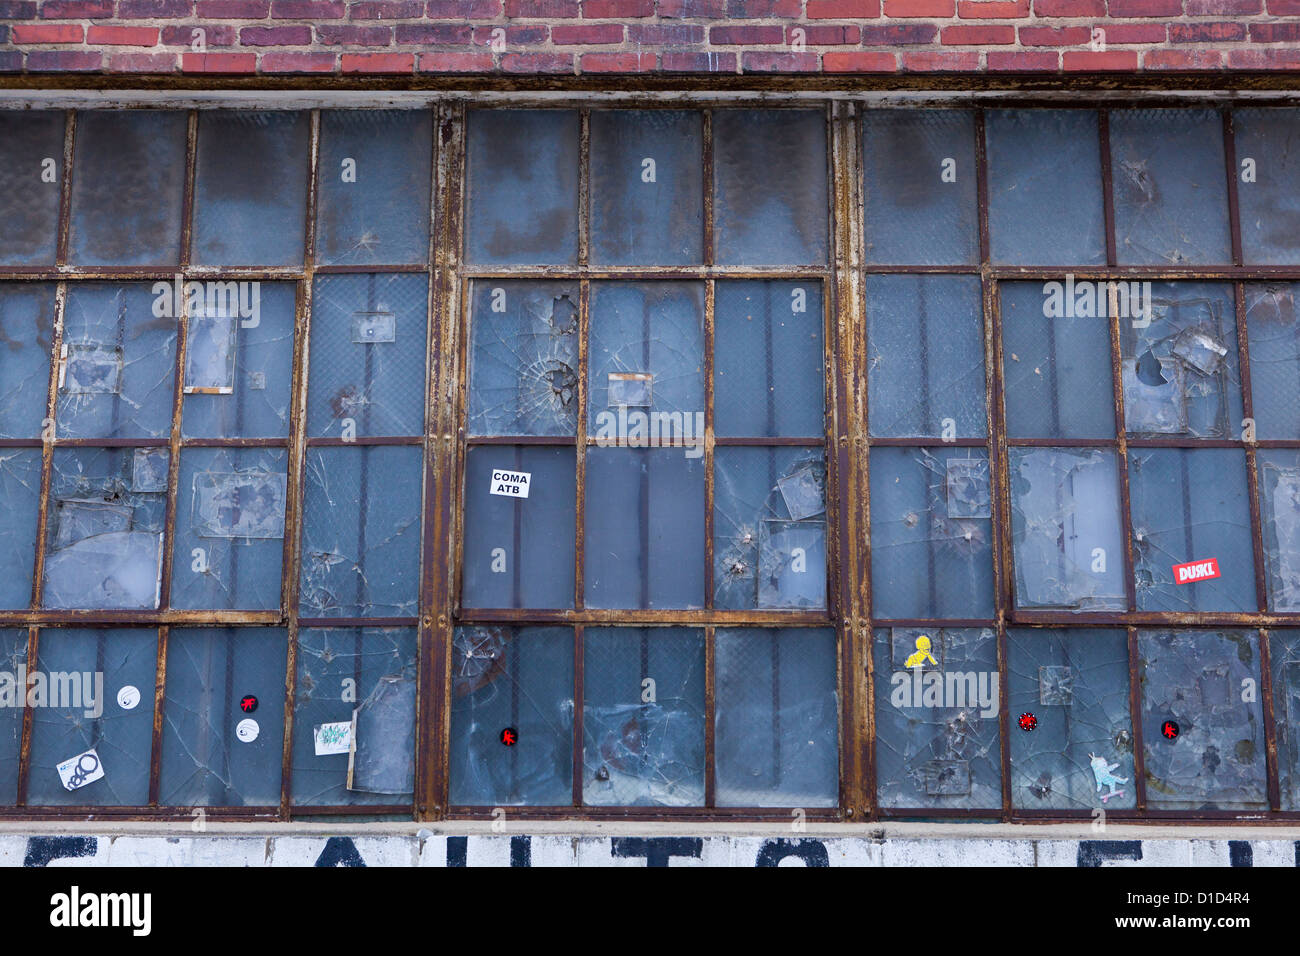 Old Window Frame Stock Photos & Old Window Frame Stock Images - Alamy